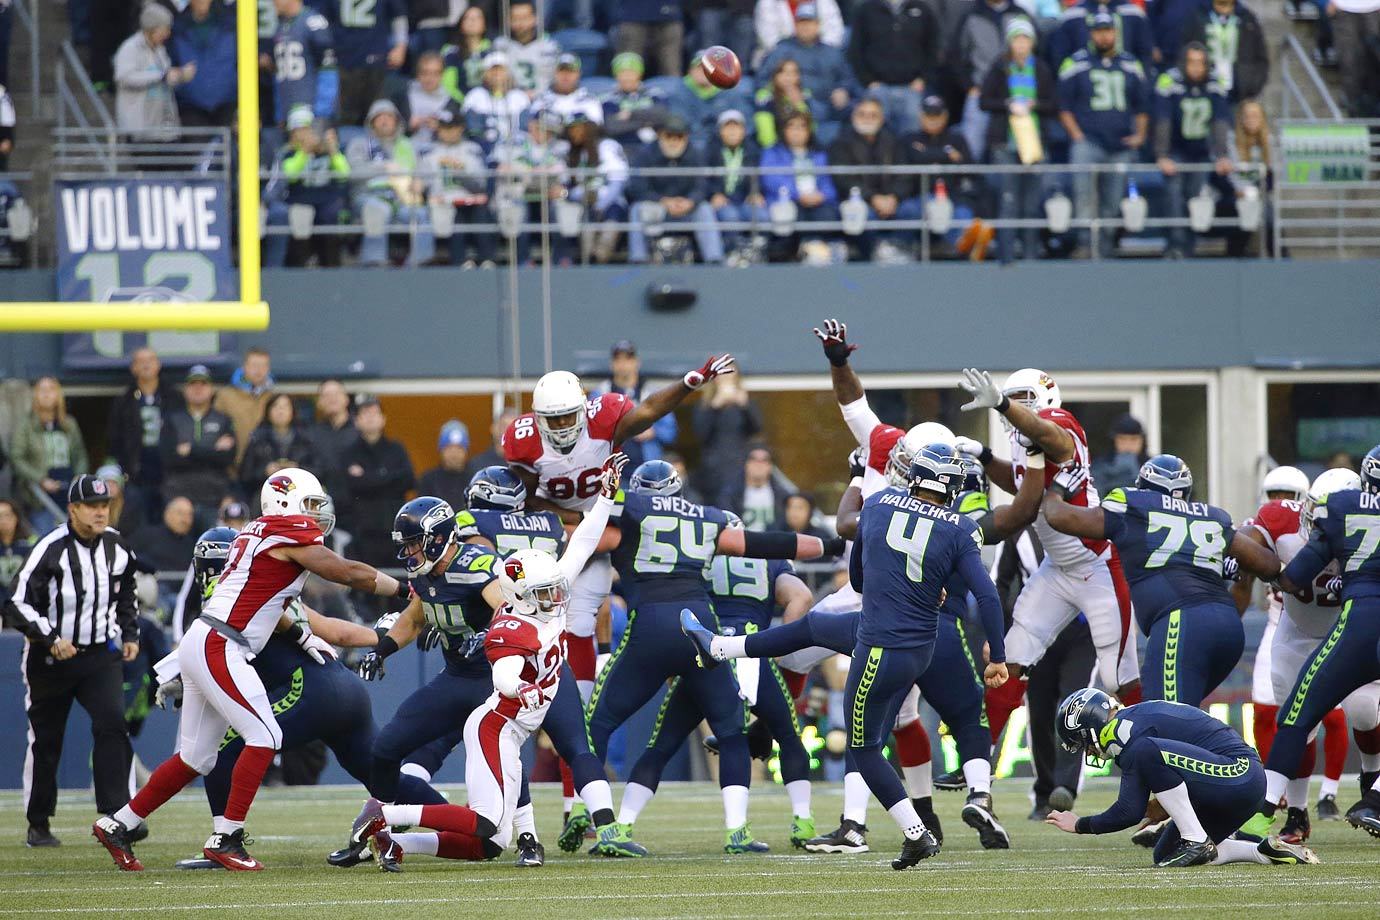 Seattle bounced back from the Chiefs loss with a 19-3 win over NFC West rival Arizona. The Cardinals passed for only 149 yards and their running game was erased. Wilson completed 17 of 22 passes and threw the game's only touchdown, while Steven Hauschka connected on four field goals.